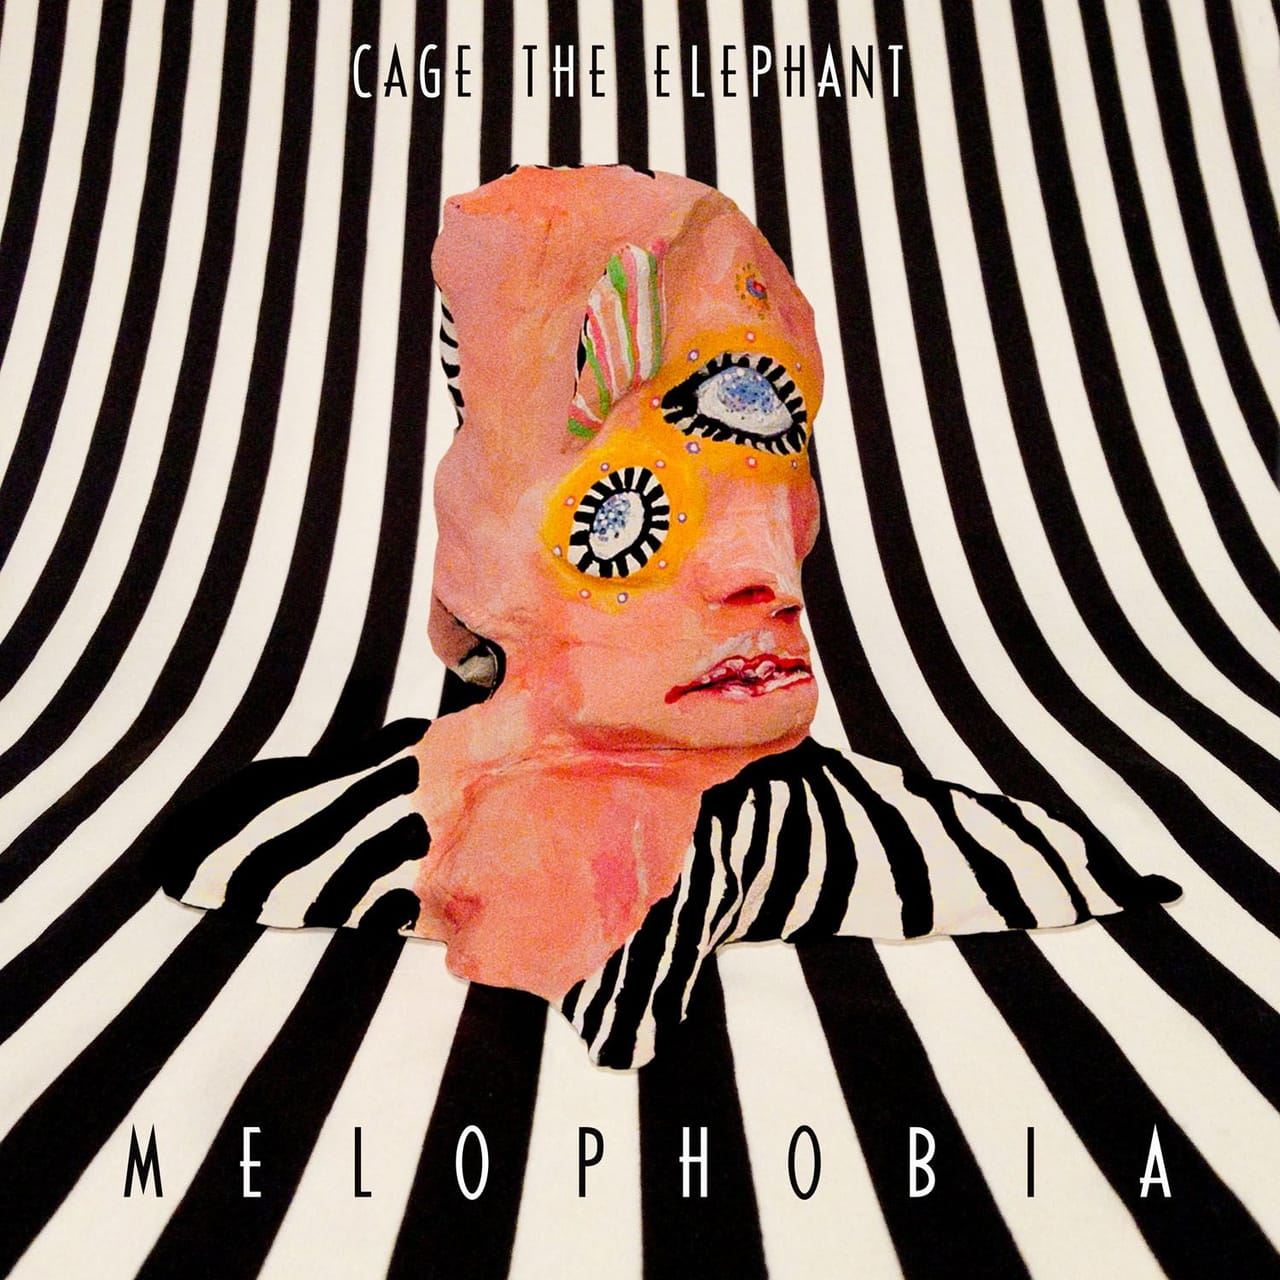 cage the elephant, music, and melophobia image